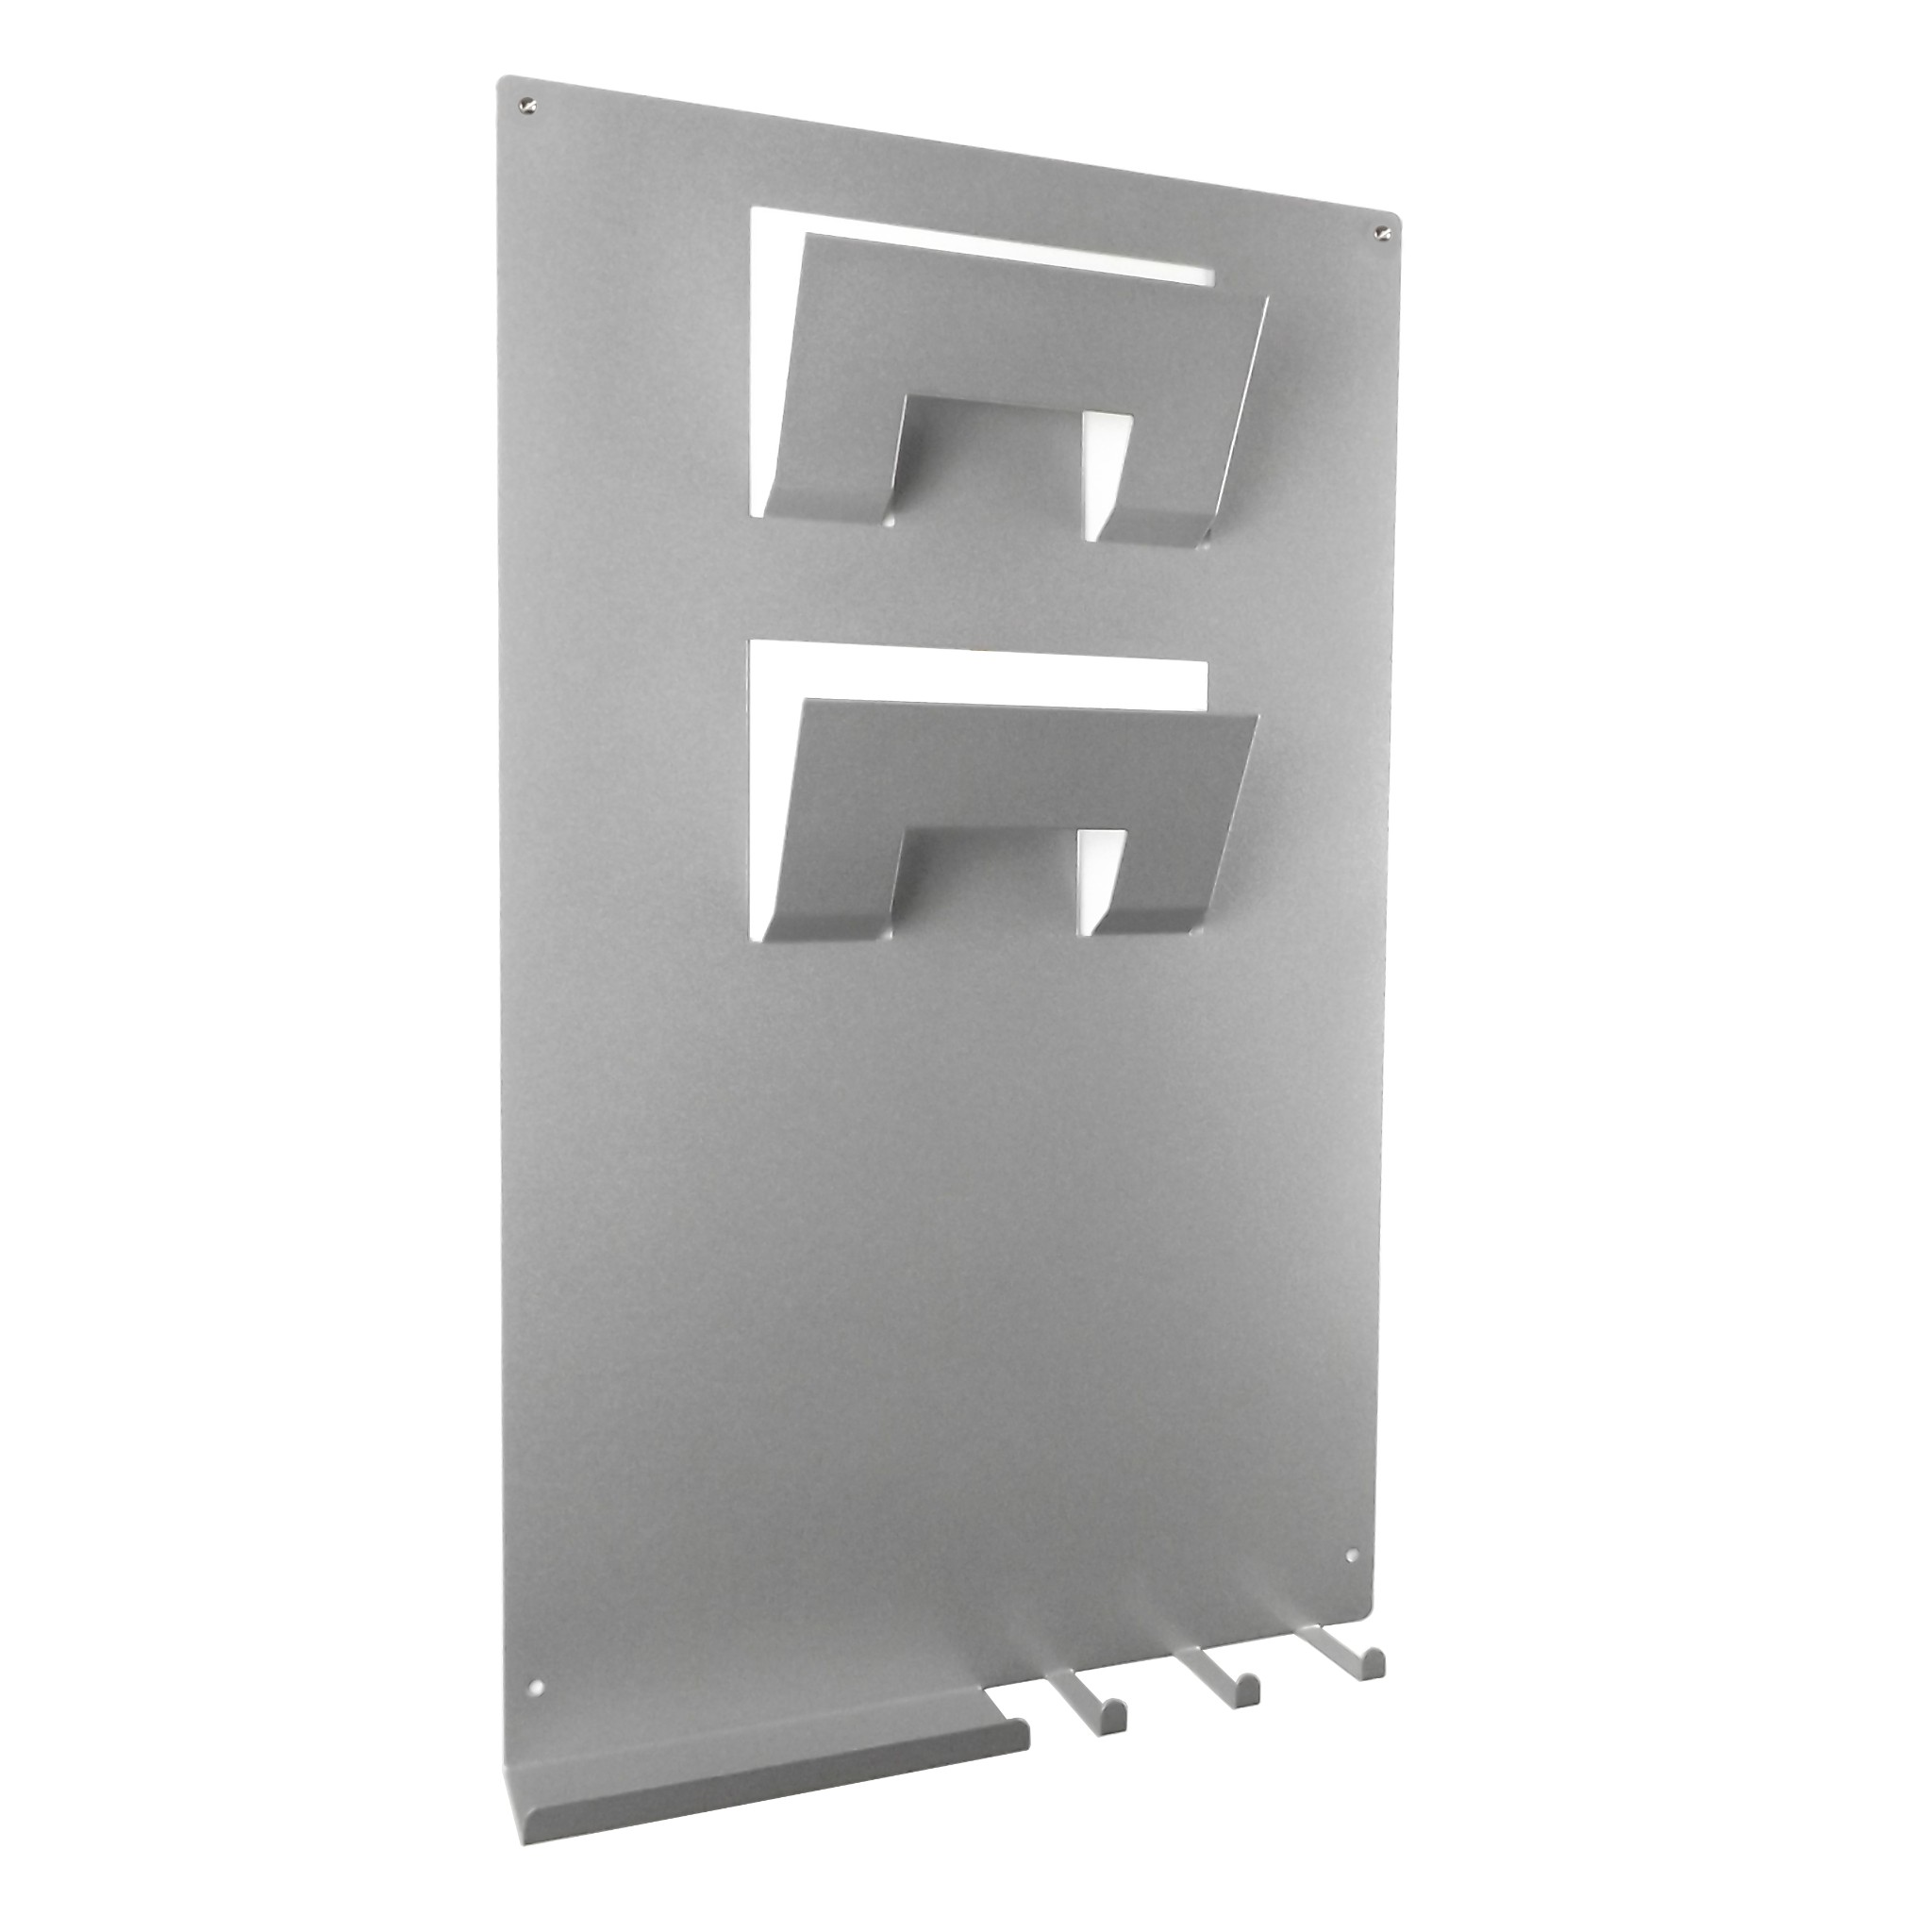 3 in 1 magnetic memo board letter rack and key holder metallic silver - Key and letter rack ...